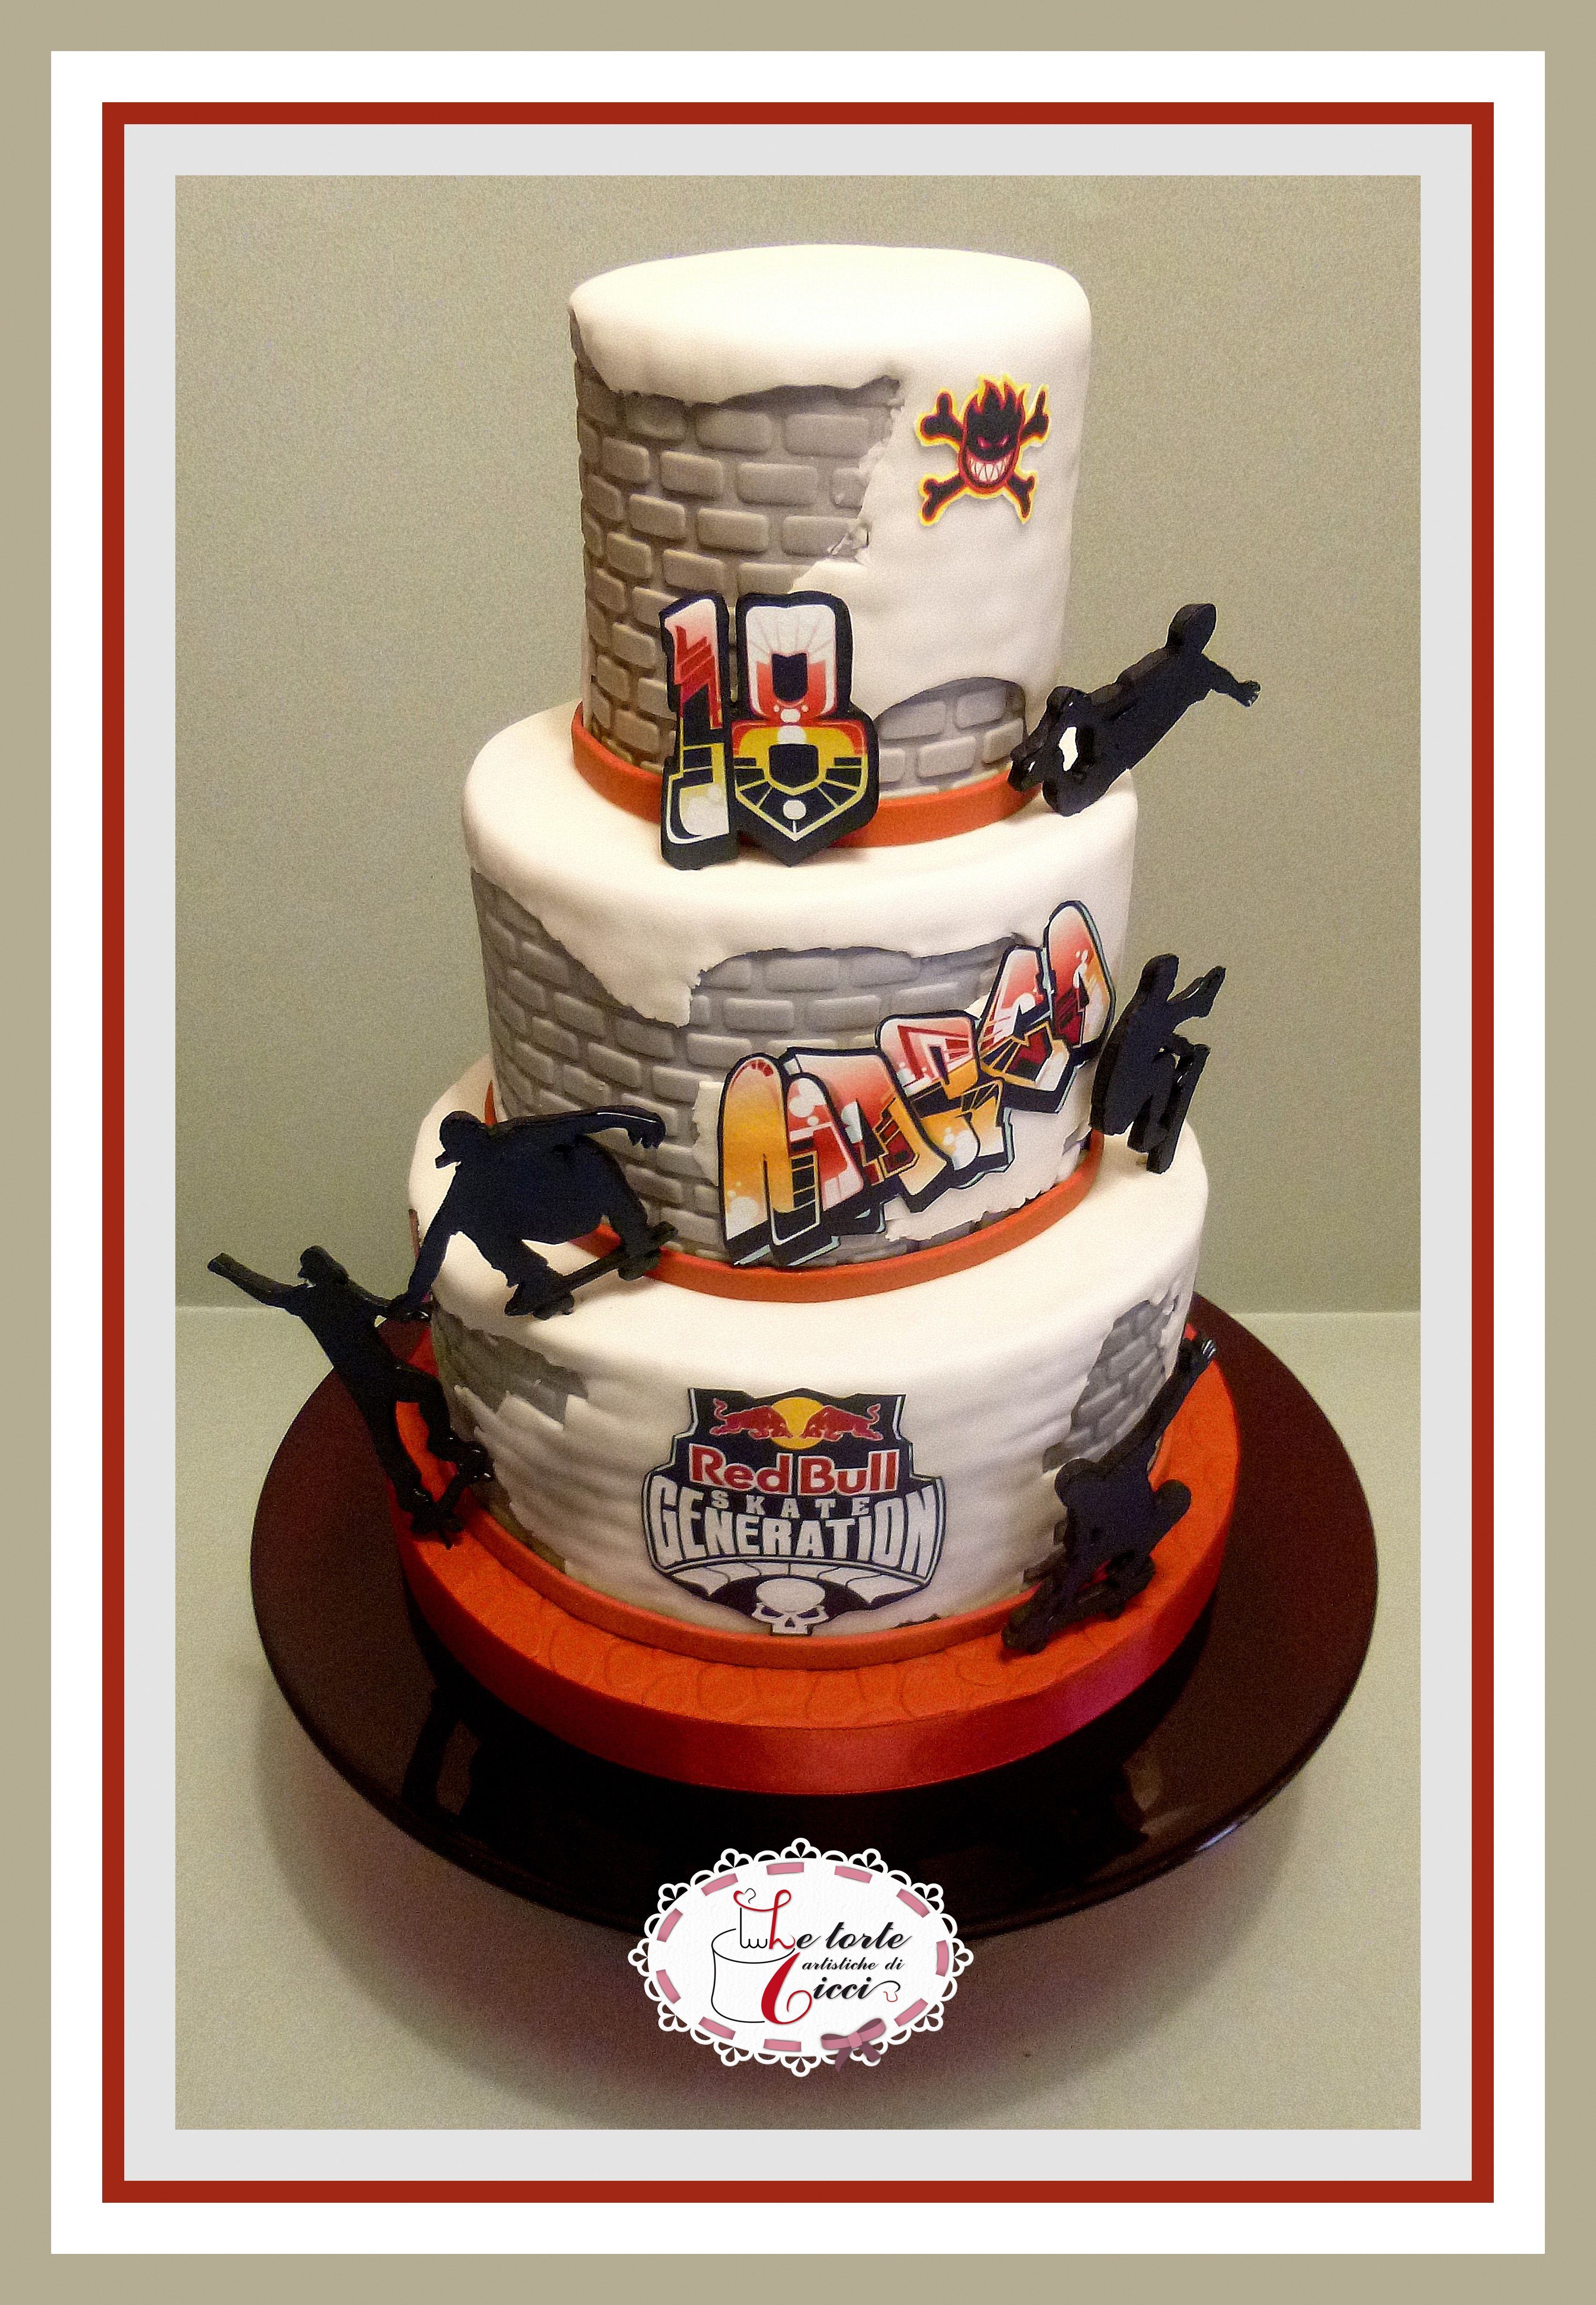 Skateboard Passion For 18th Birthday Cake Cakes For Man